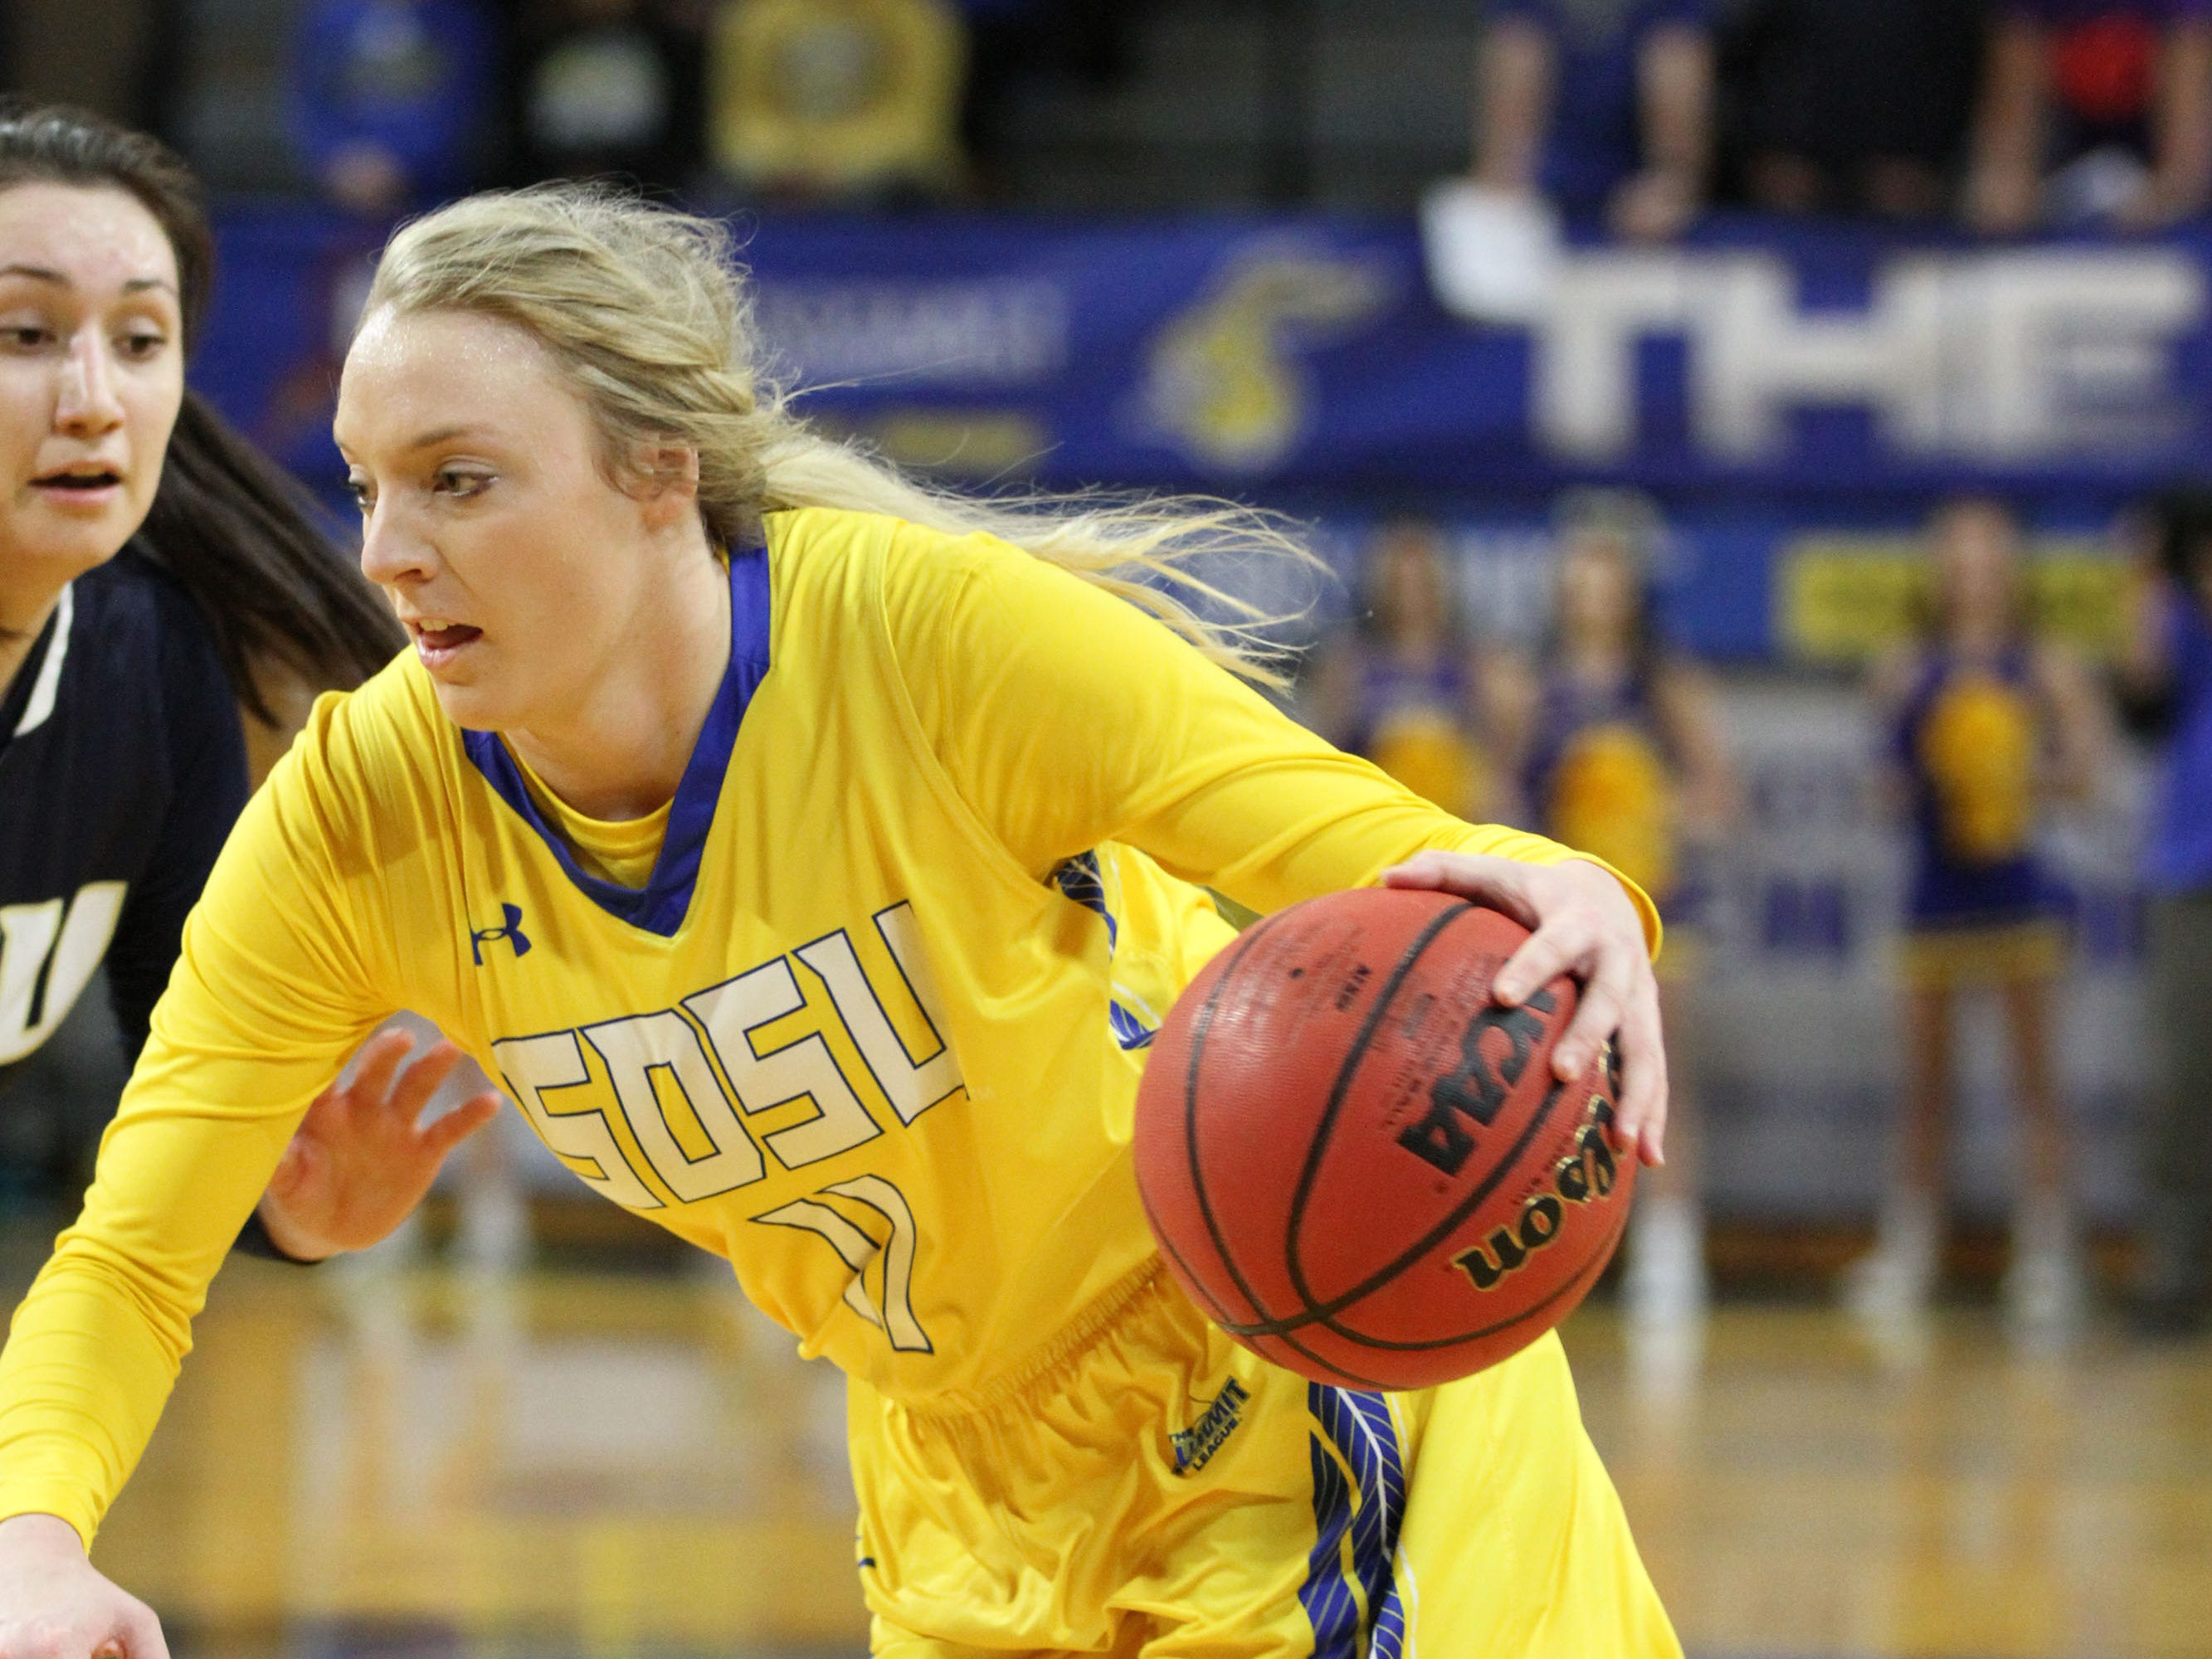 South Dakota State's Madison Guebert (11) drives to the basket past Oral Roberts' Lakota Beatty during the first quarter of the Jackrabbits' matchup against the Golden Eagles Saturday afternoon at Frost Arena in Brookings.